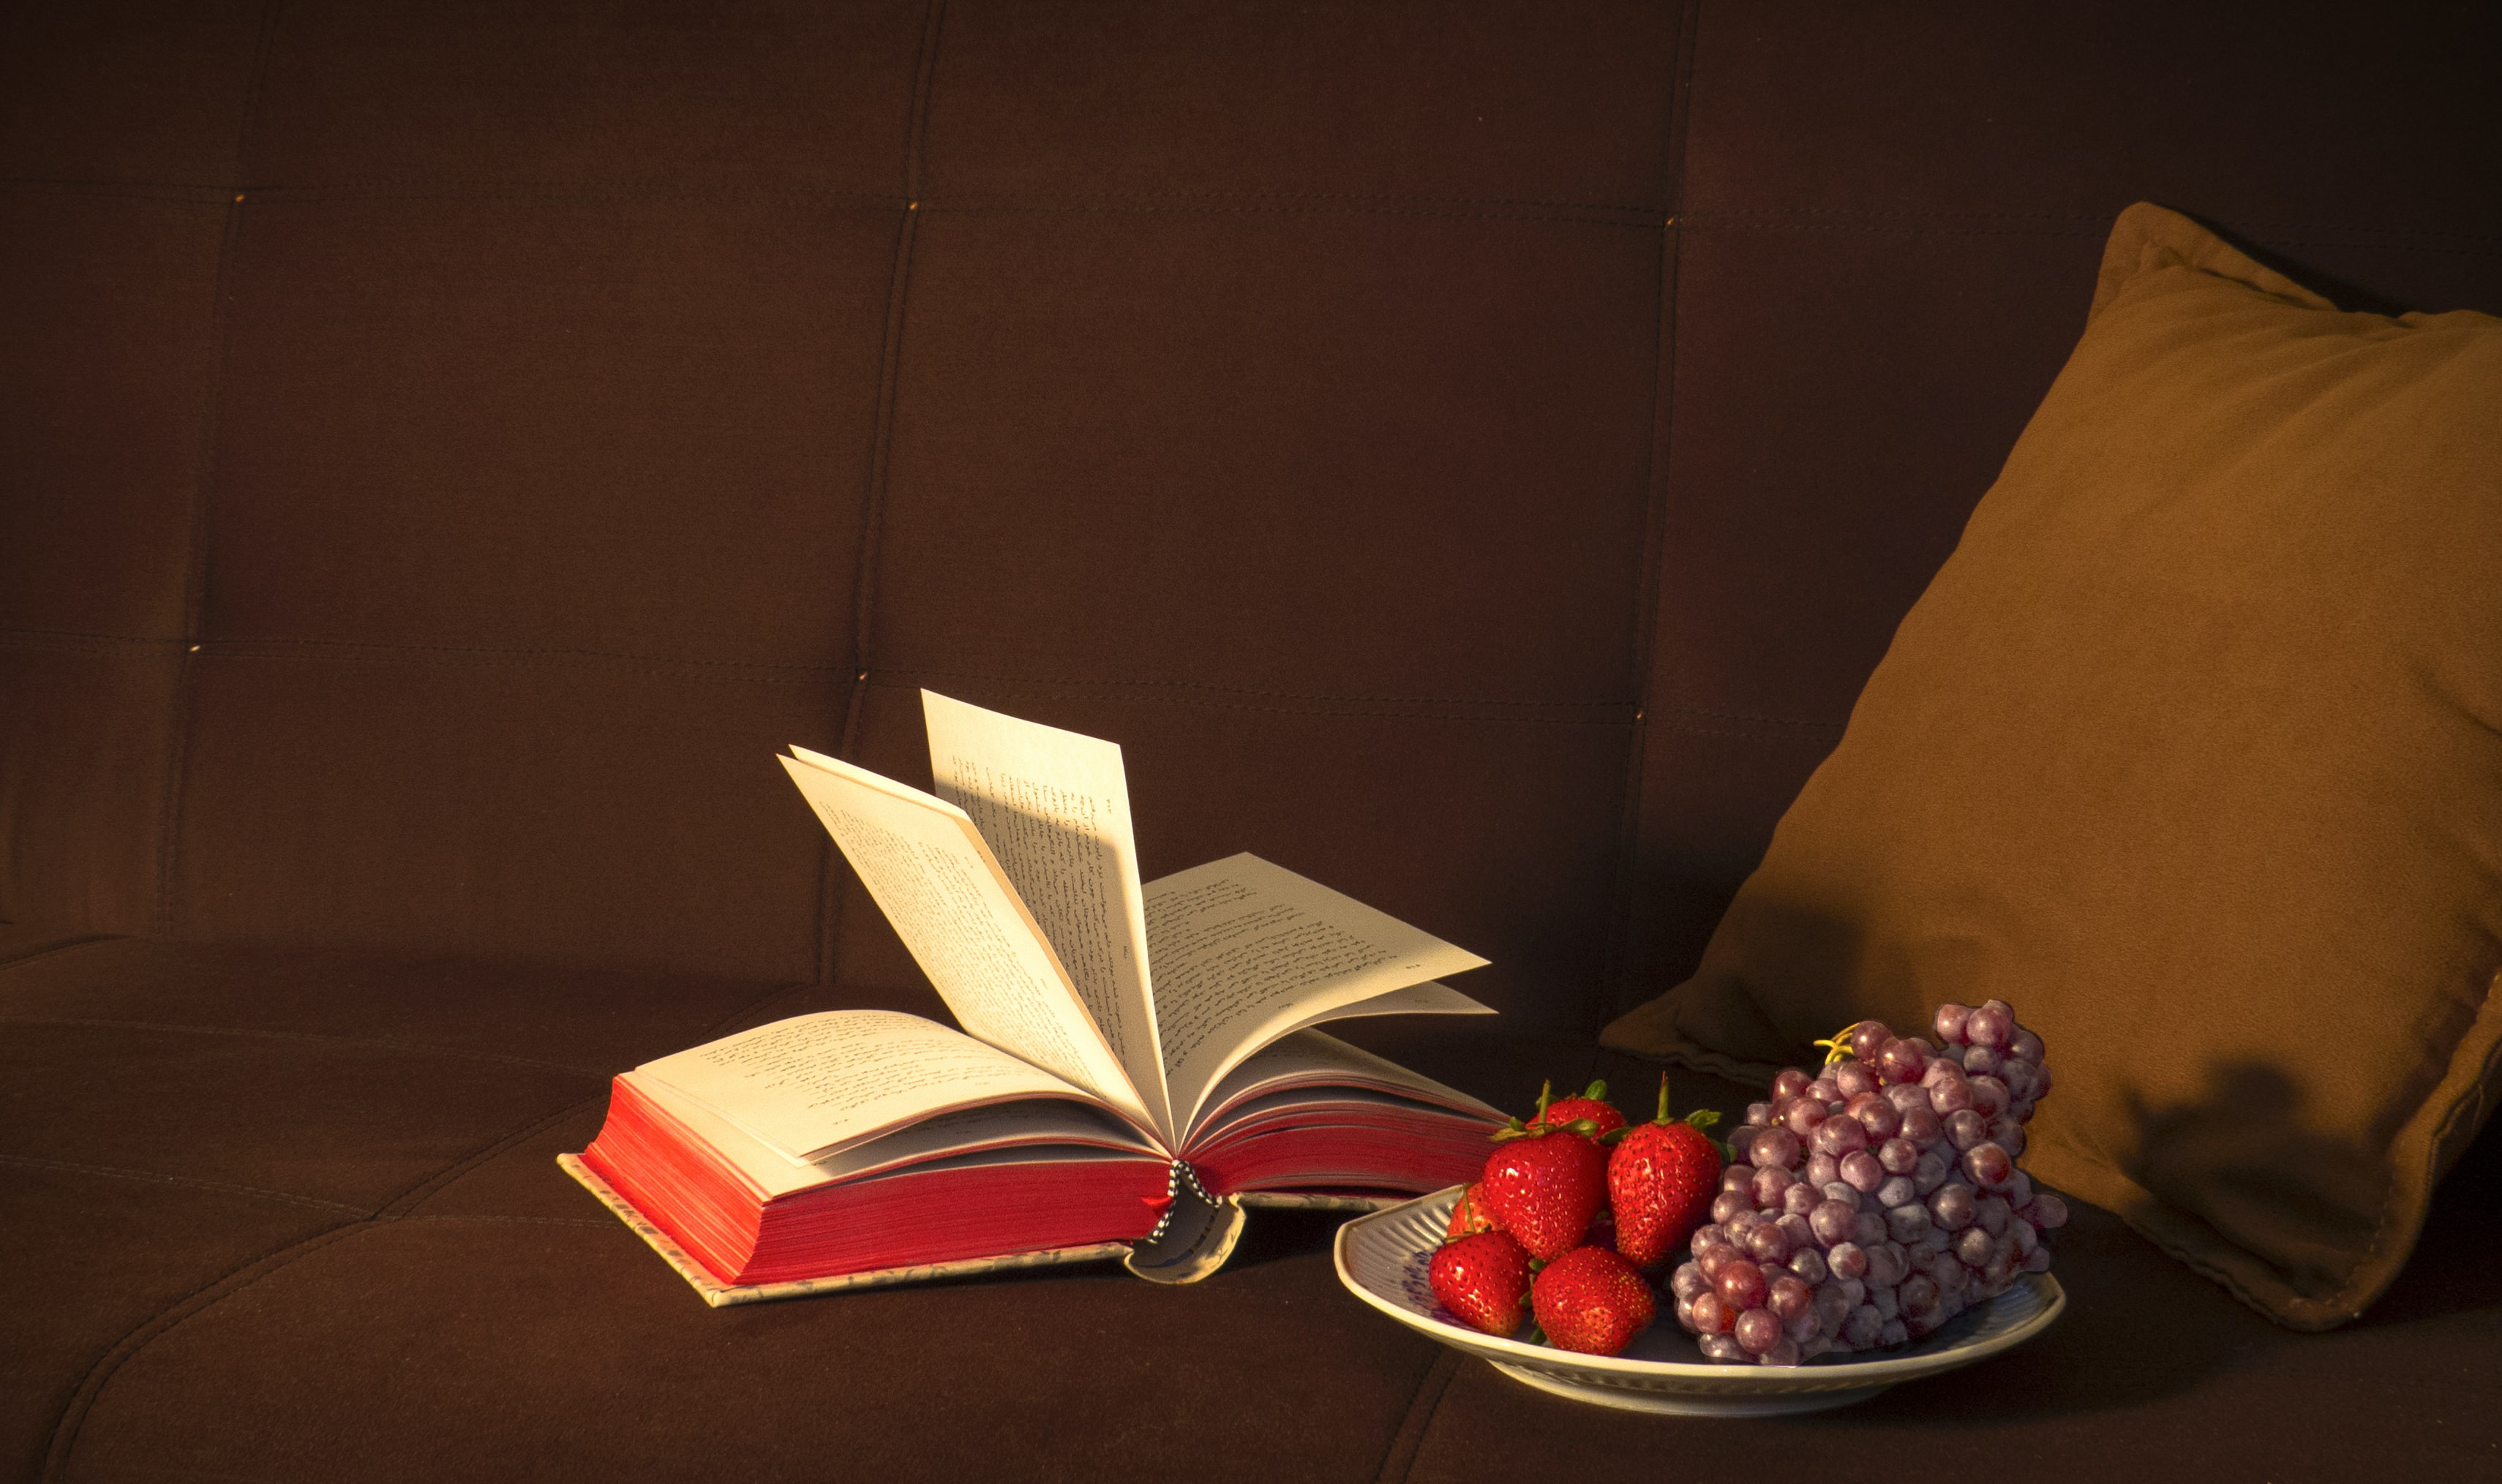 strawberries and grapes on white plate